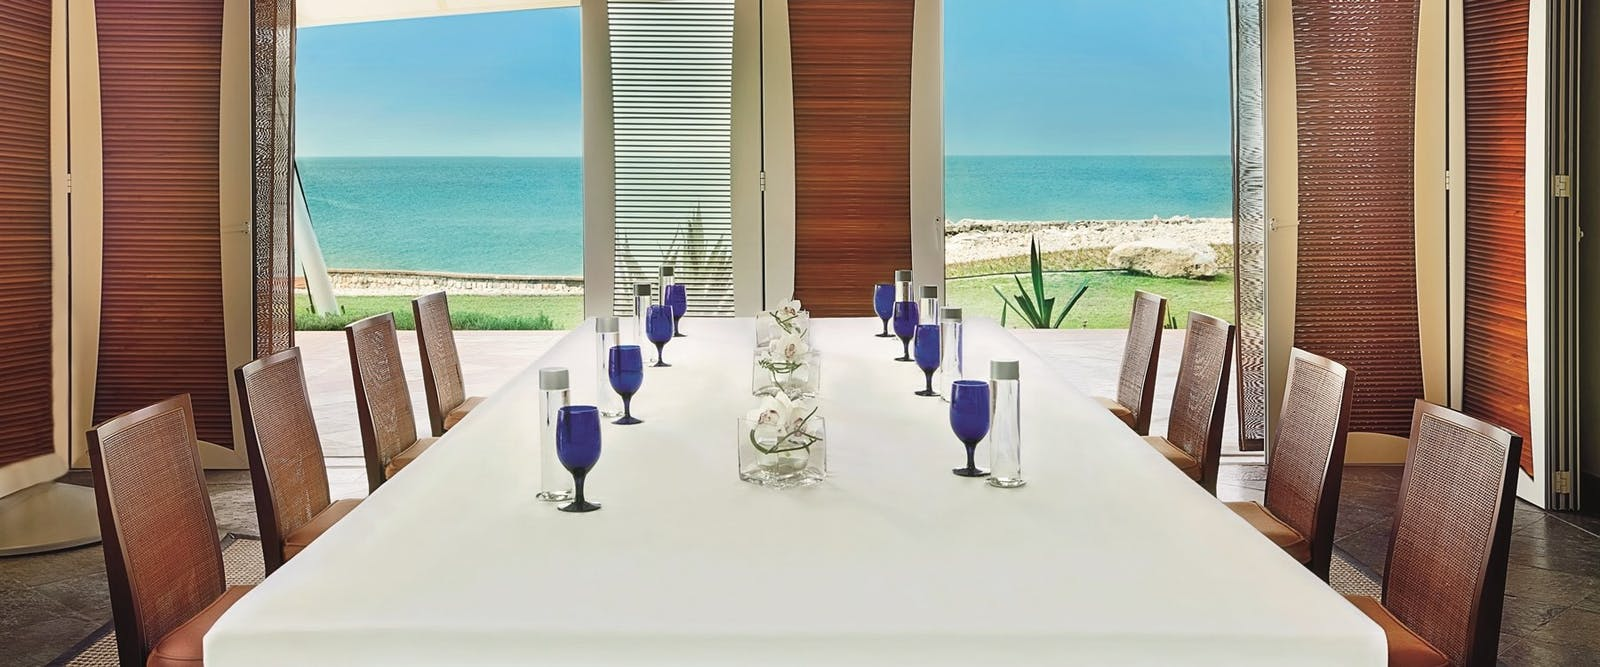 Dining Table at Villas at The Ritz-Carlton